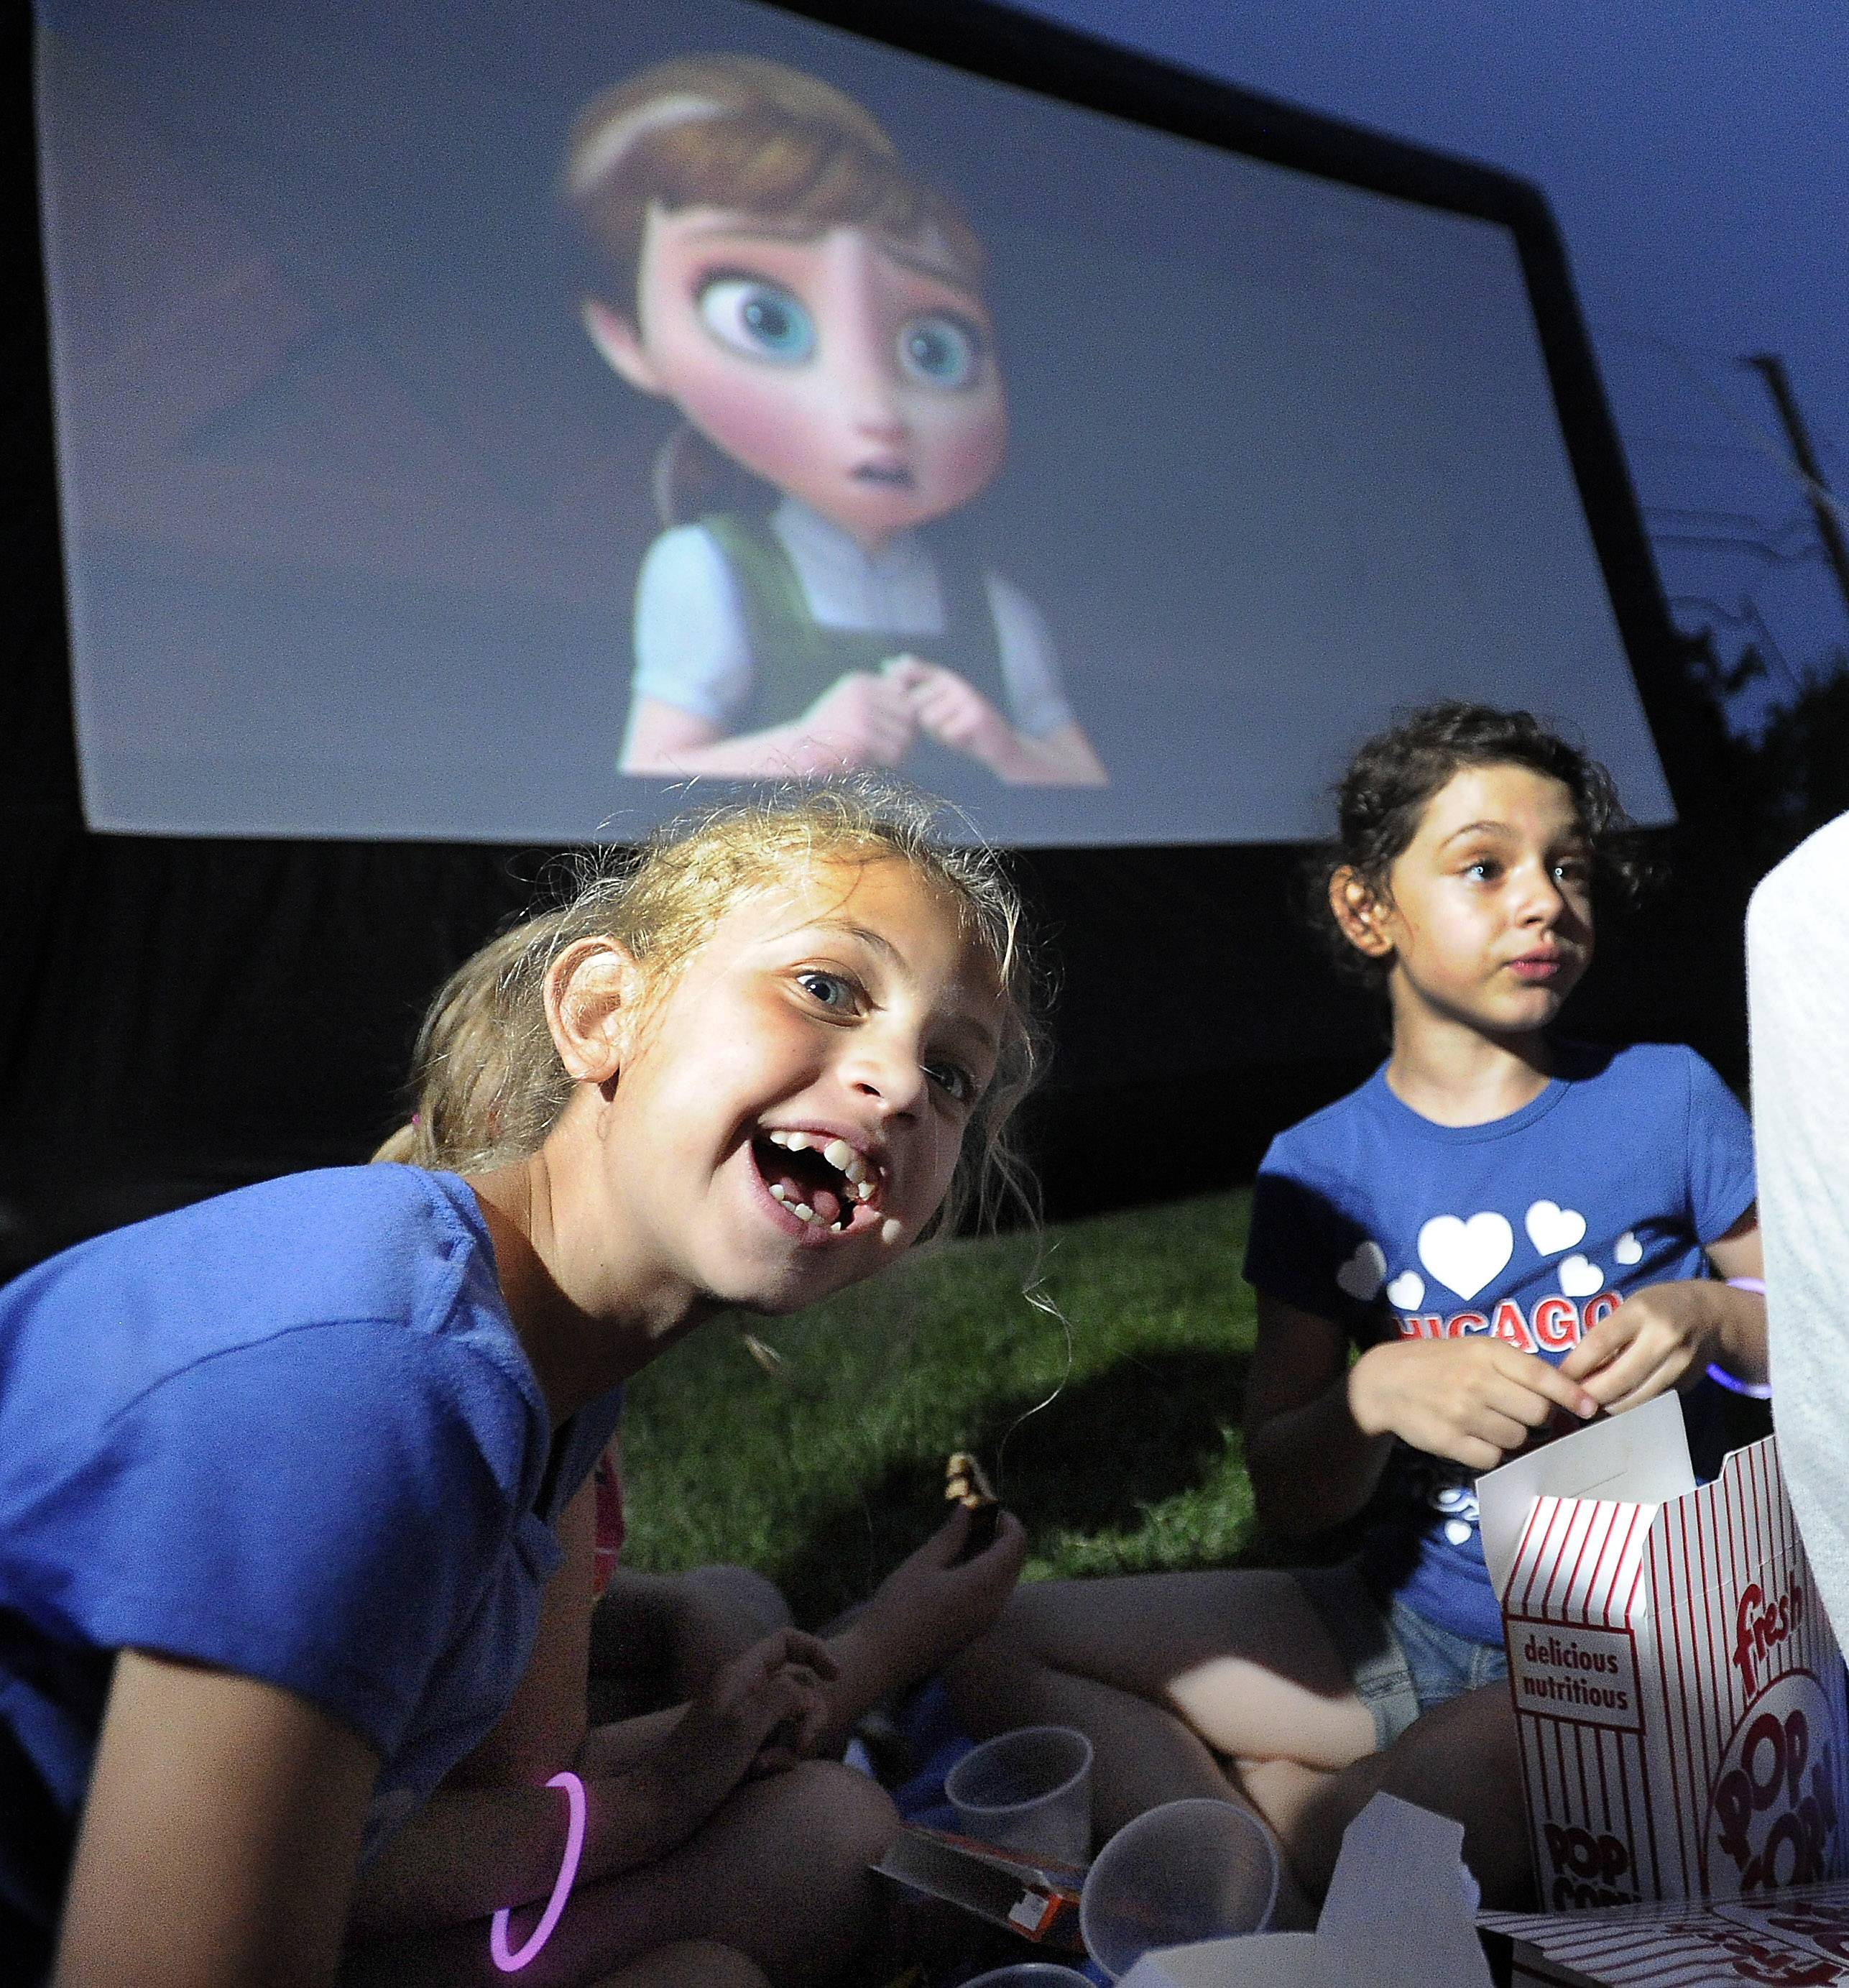 Enjoying Walt Disney's Frozen is Olivia Reed, 8, and her friend Sophia Licato, 7, both of Arlington Heights at Recreation Park in Arlington Heights on Friday.